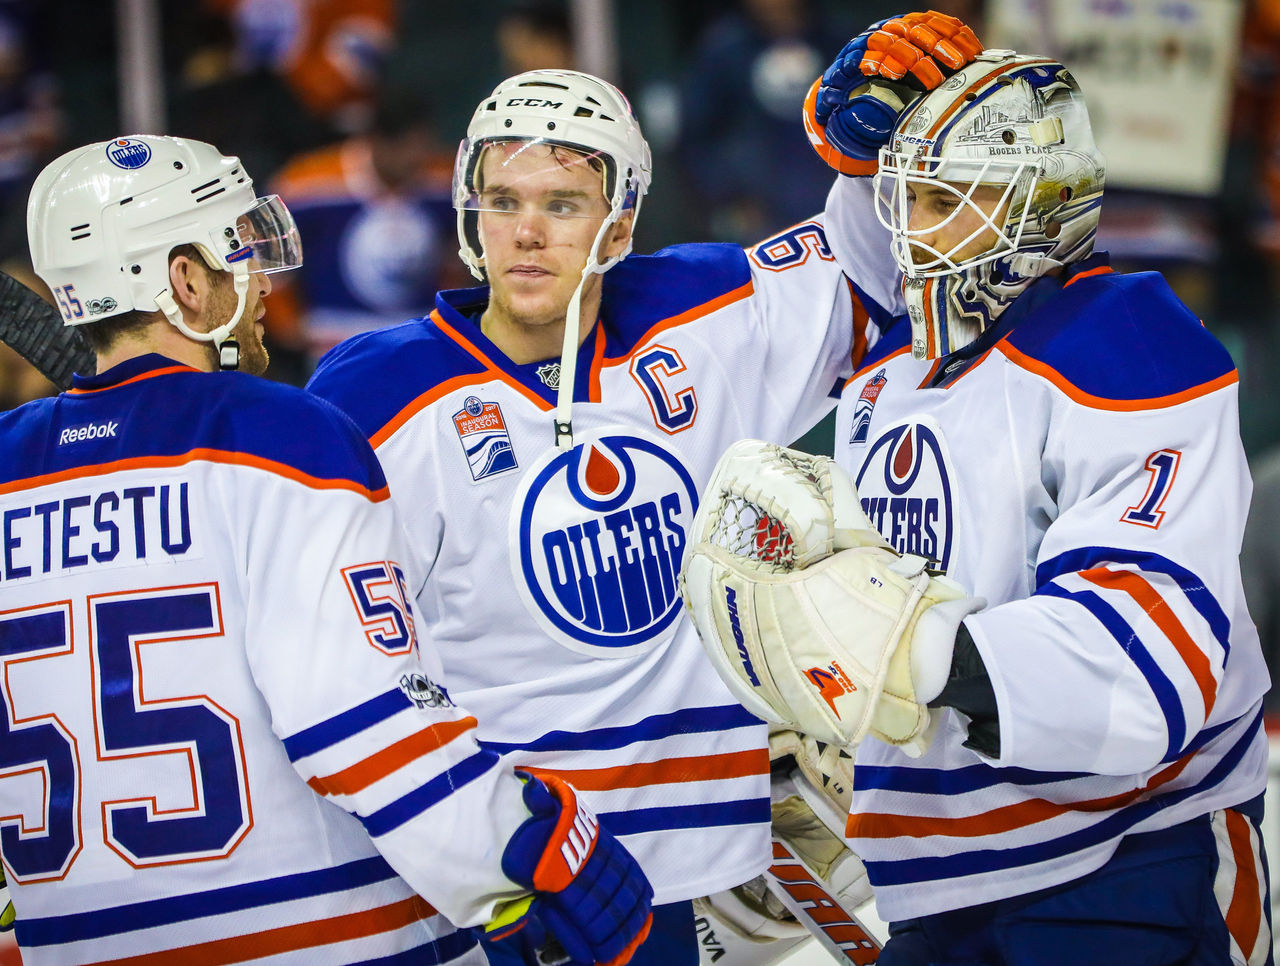 Cropped_2017-01-22t061909z_546526782_nocid_rtrmadp_3_nhl-edmonton-oilers-at-calgary-flames